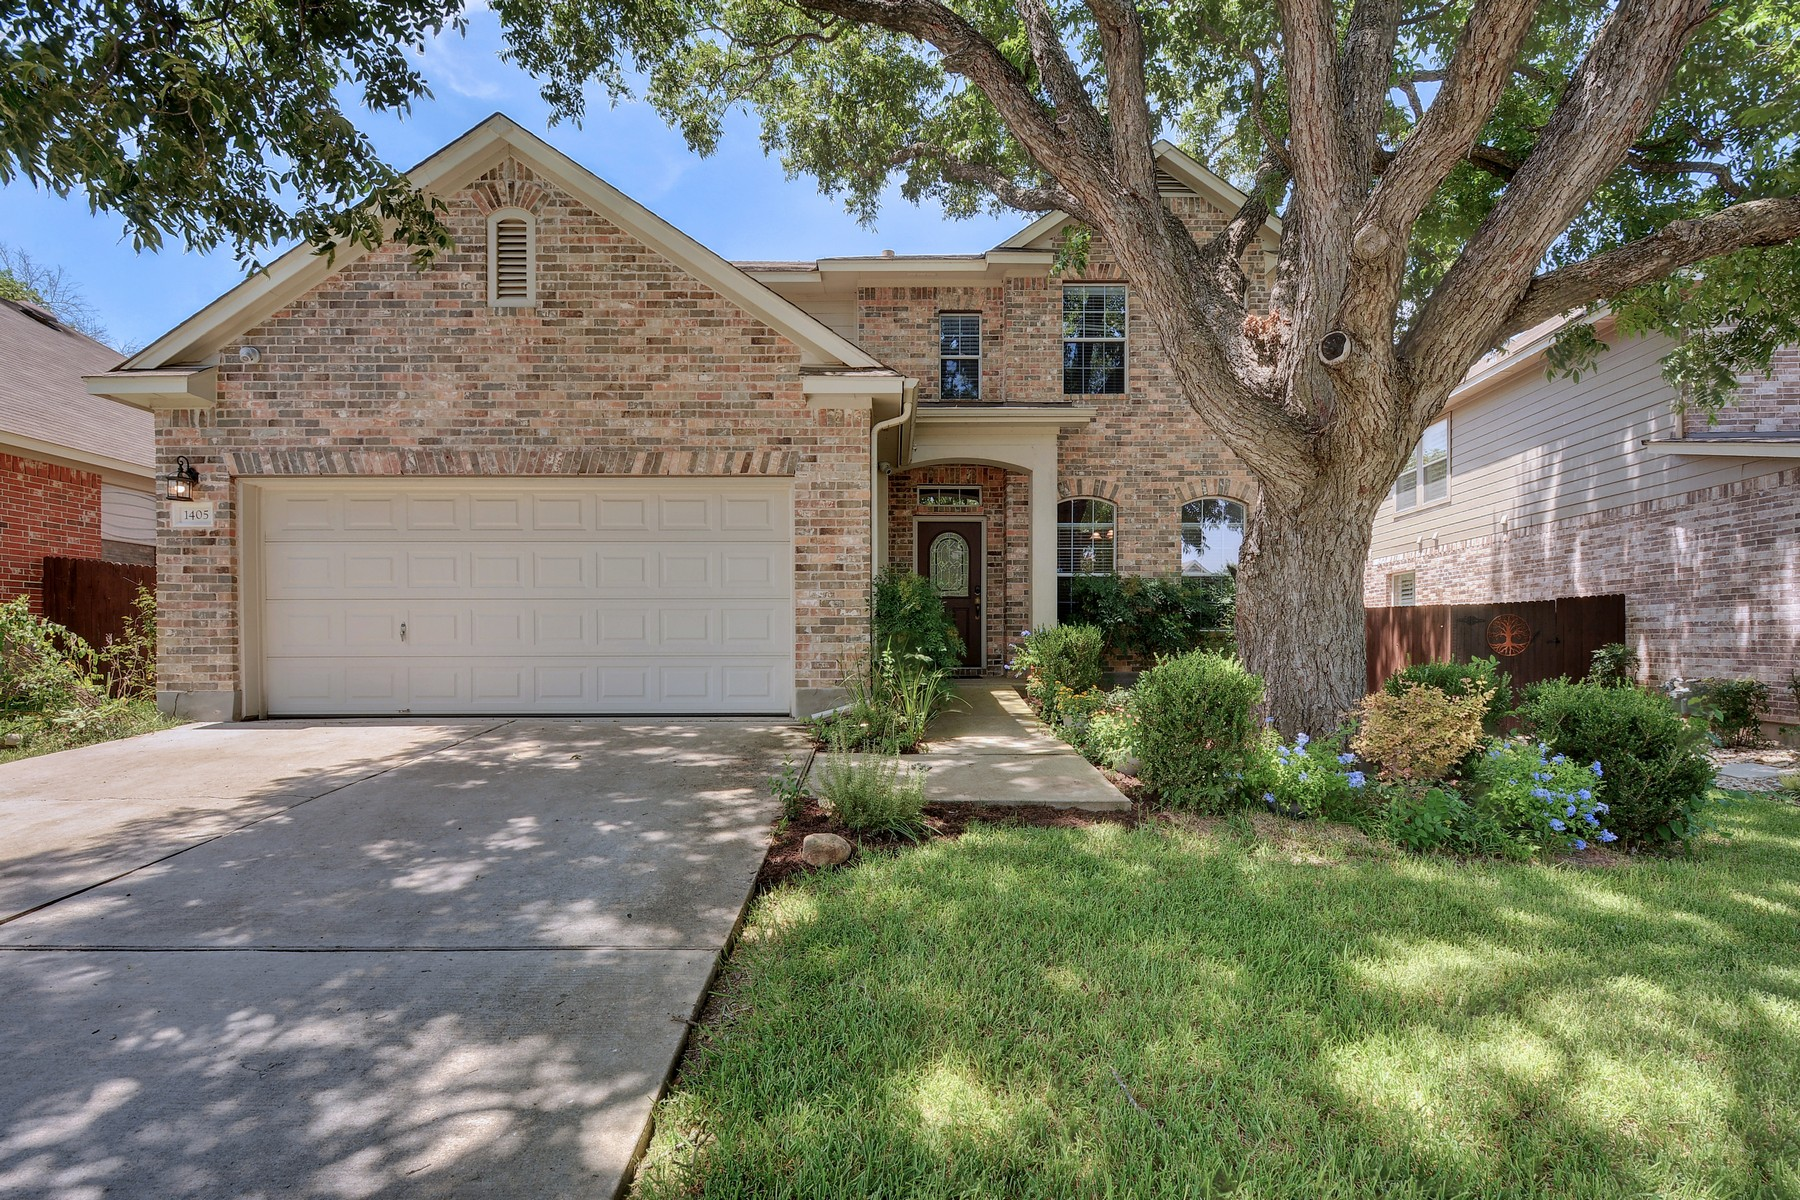 Single Family Home for Sale at Minutes to the Domain 1405 Gorham St Austin, Texas 78758 United States